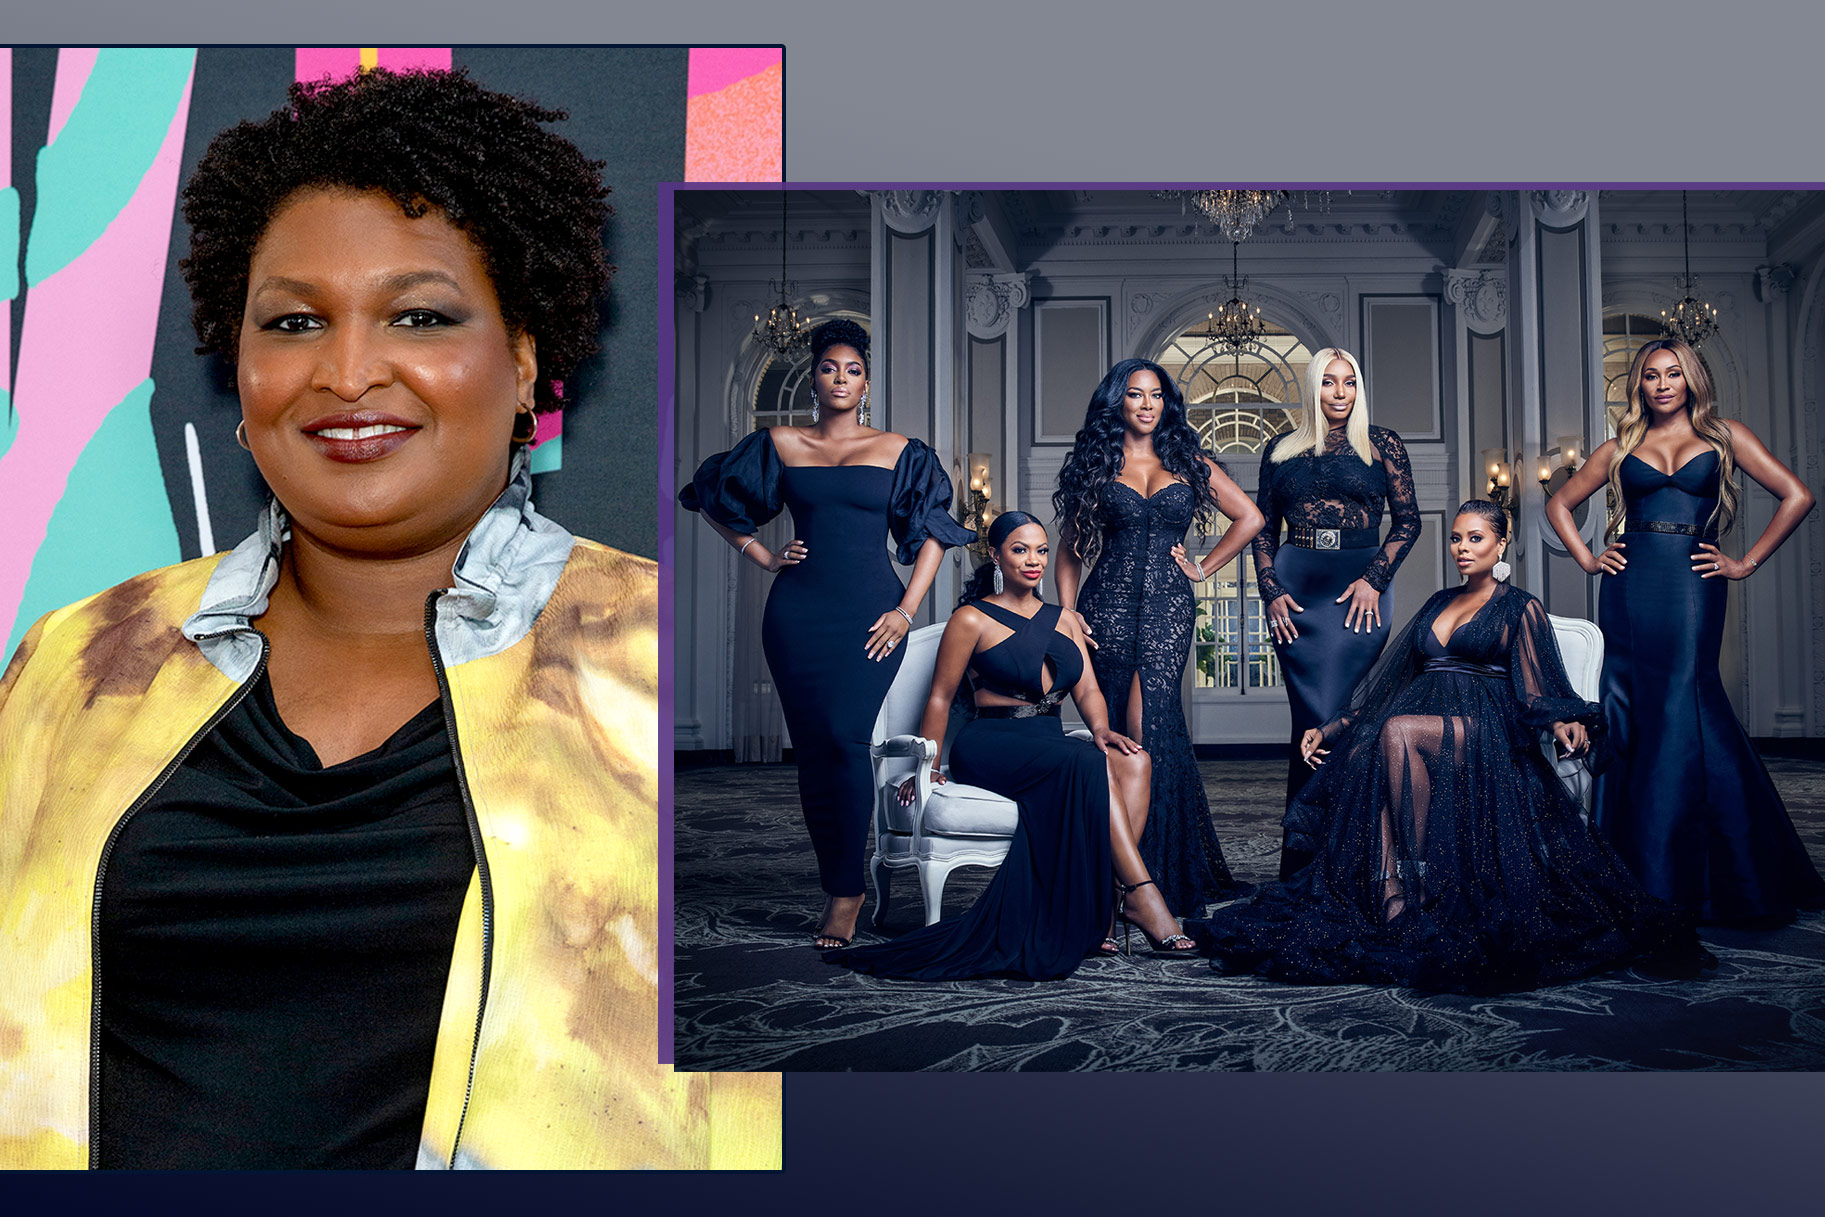 Stacey Abrams Rhoa Housewives Atlanta